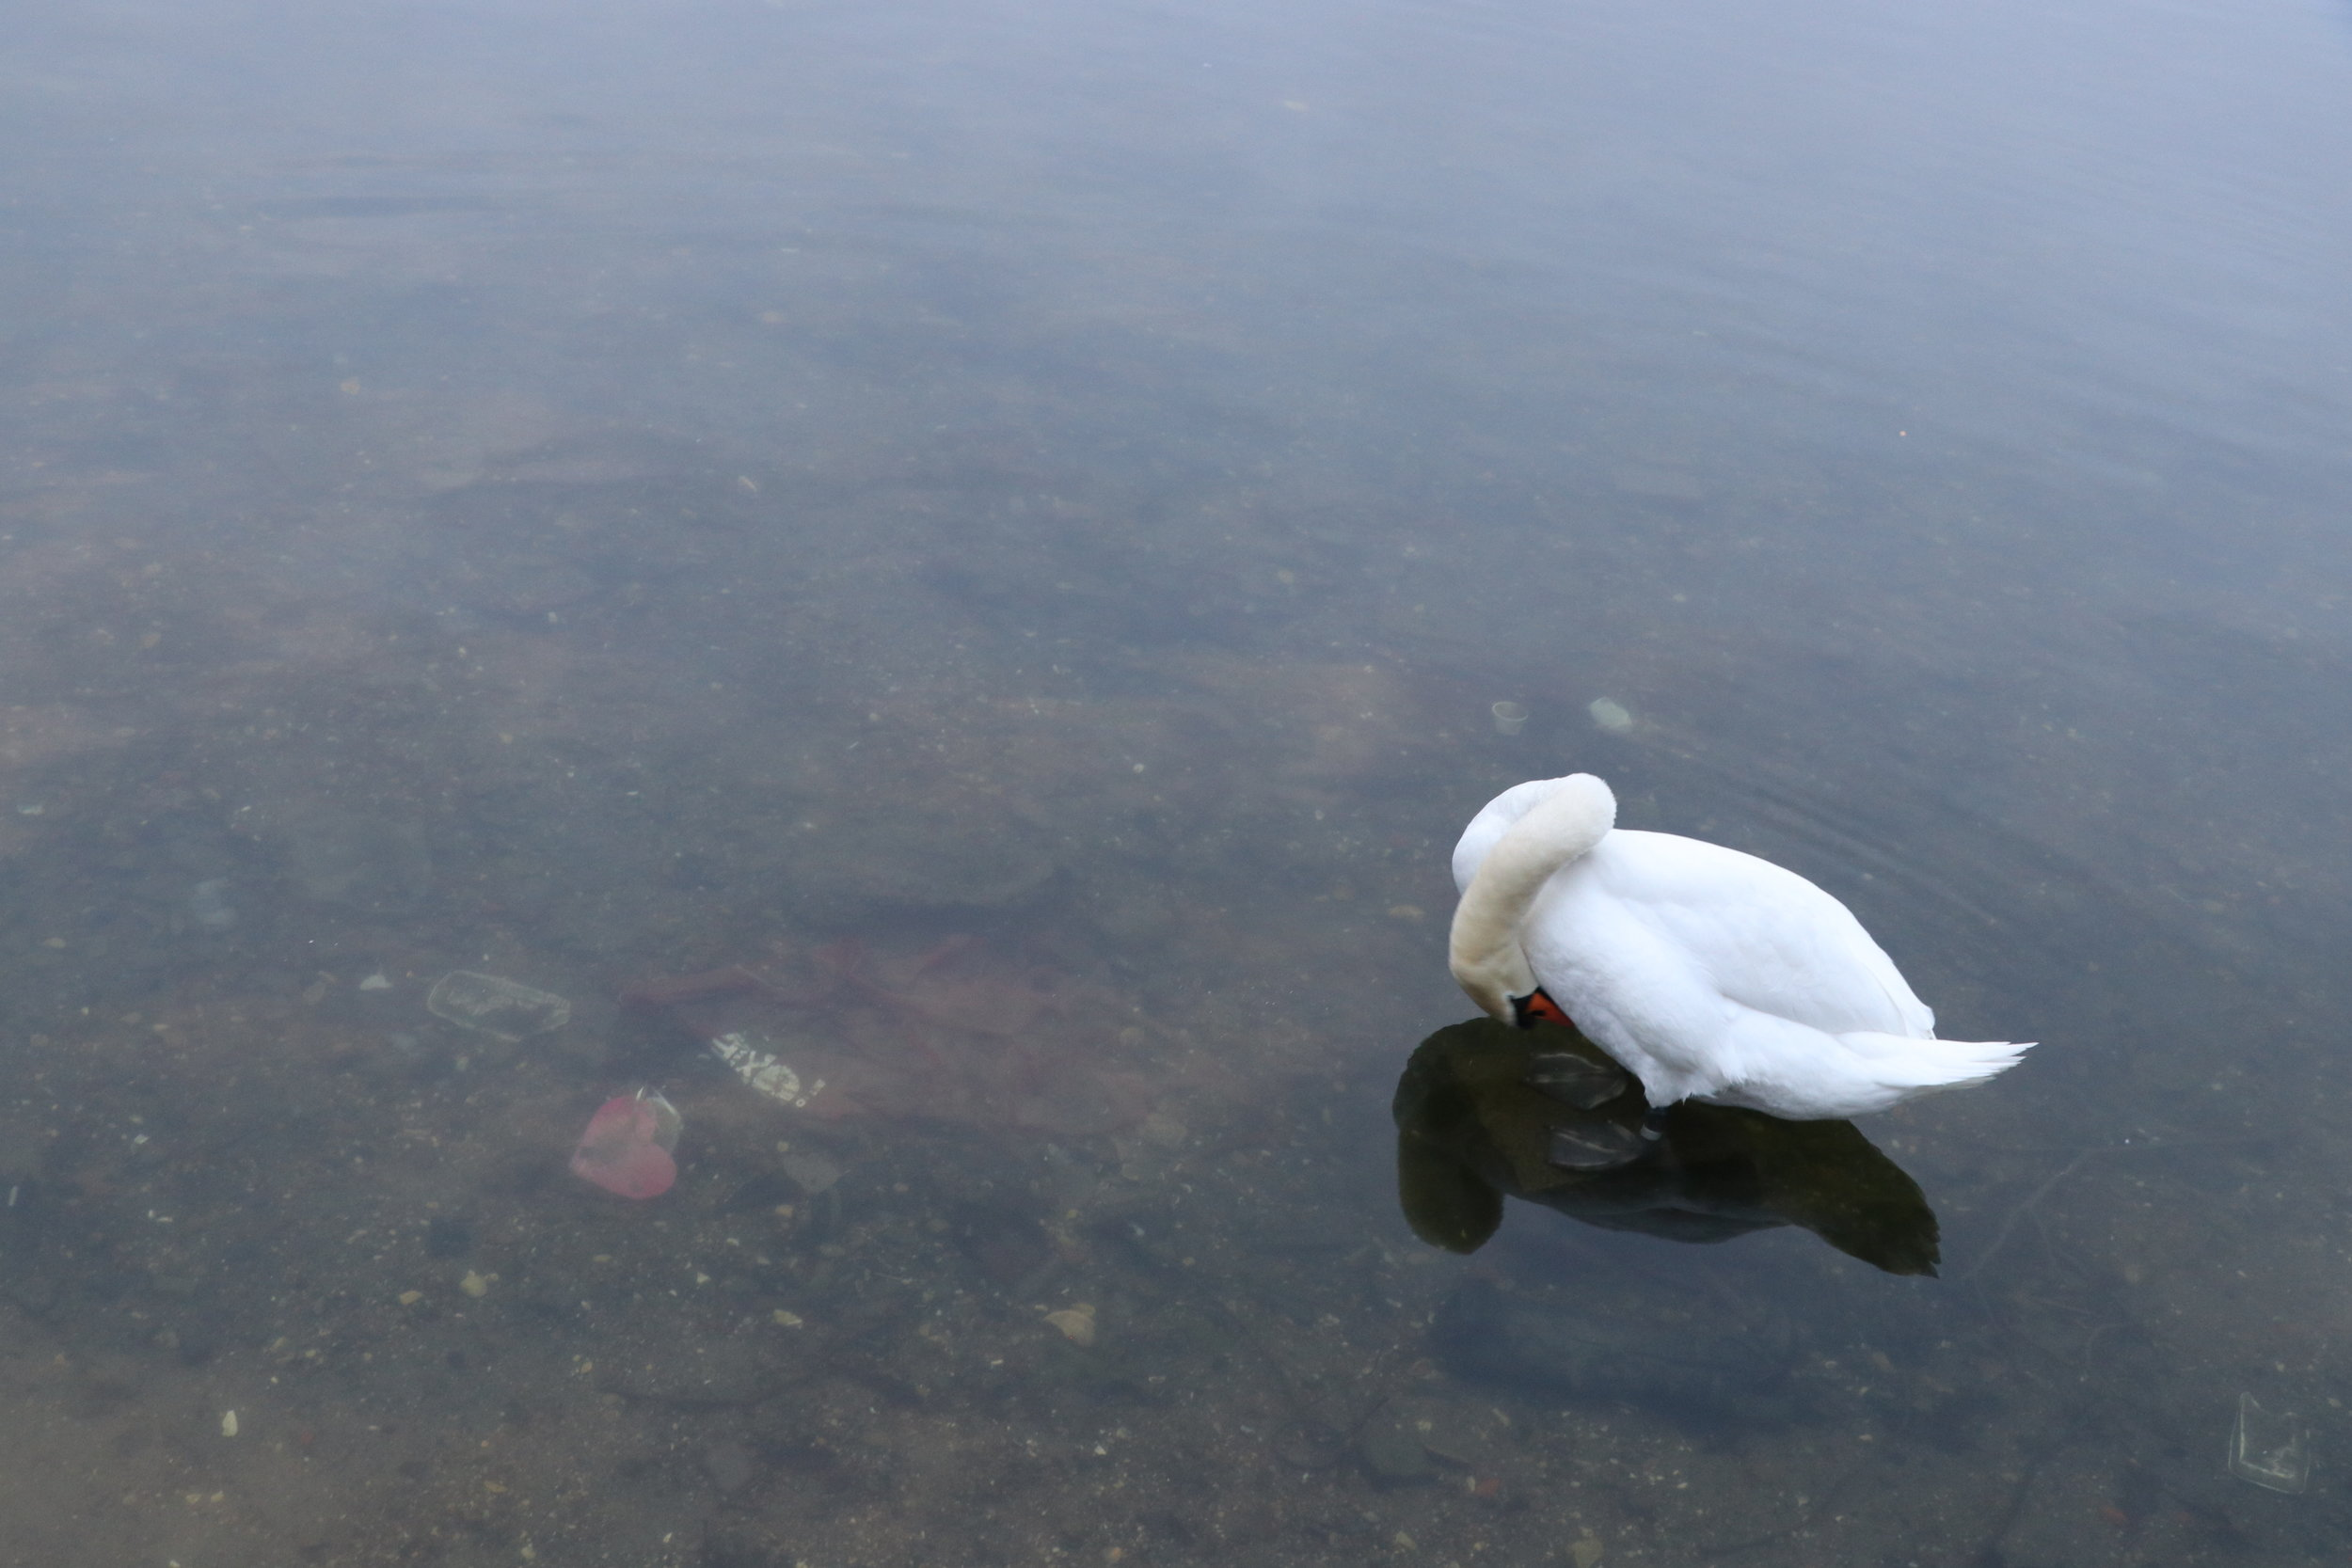 ©Erica Cirino. Mute swan in trash-filled water.